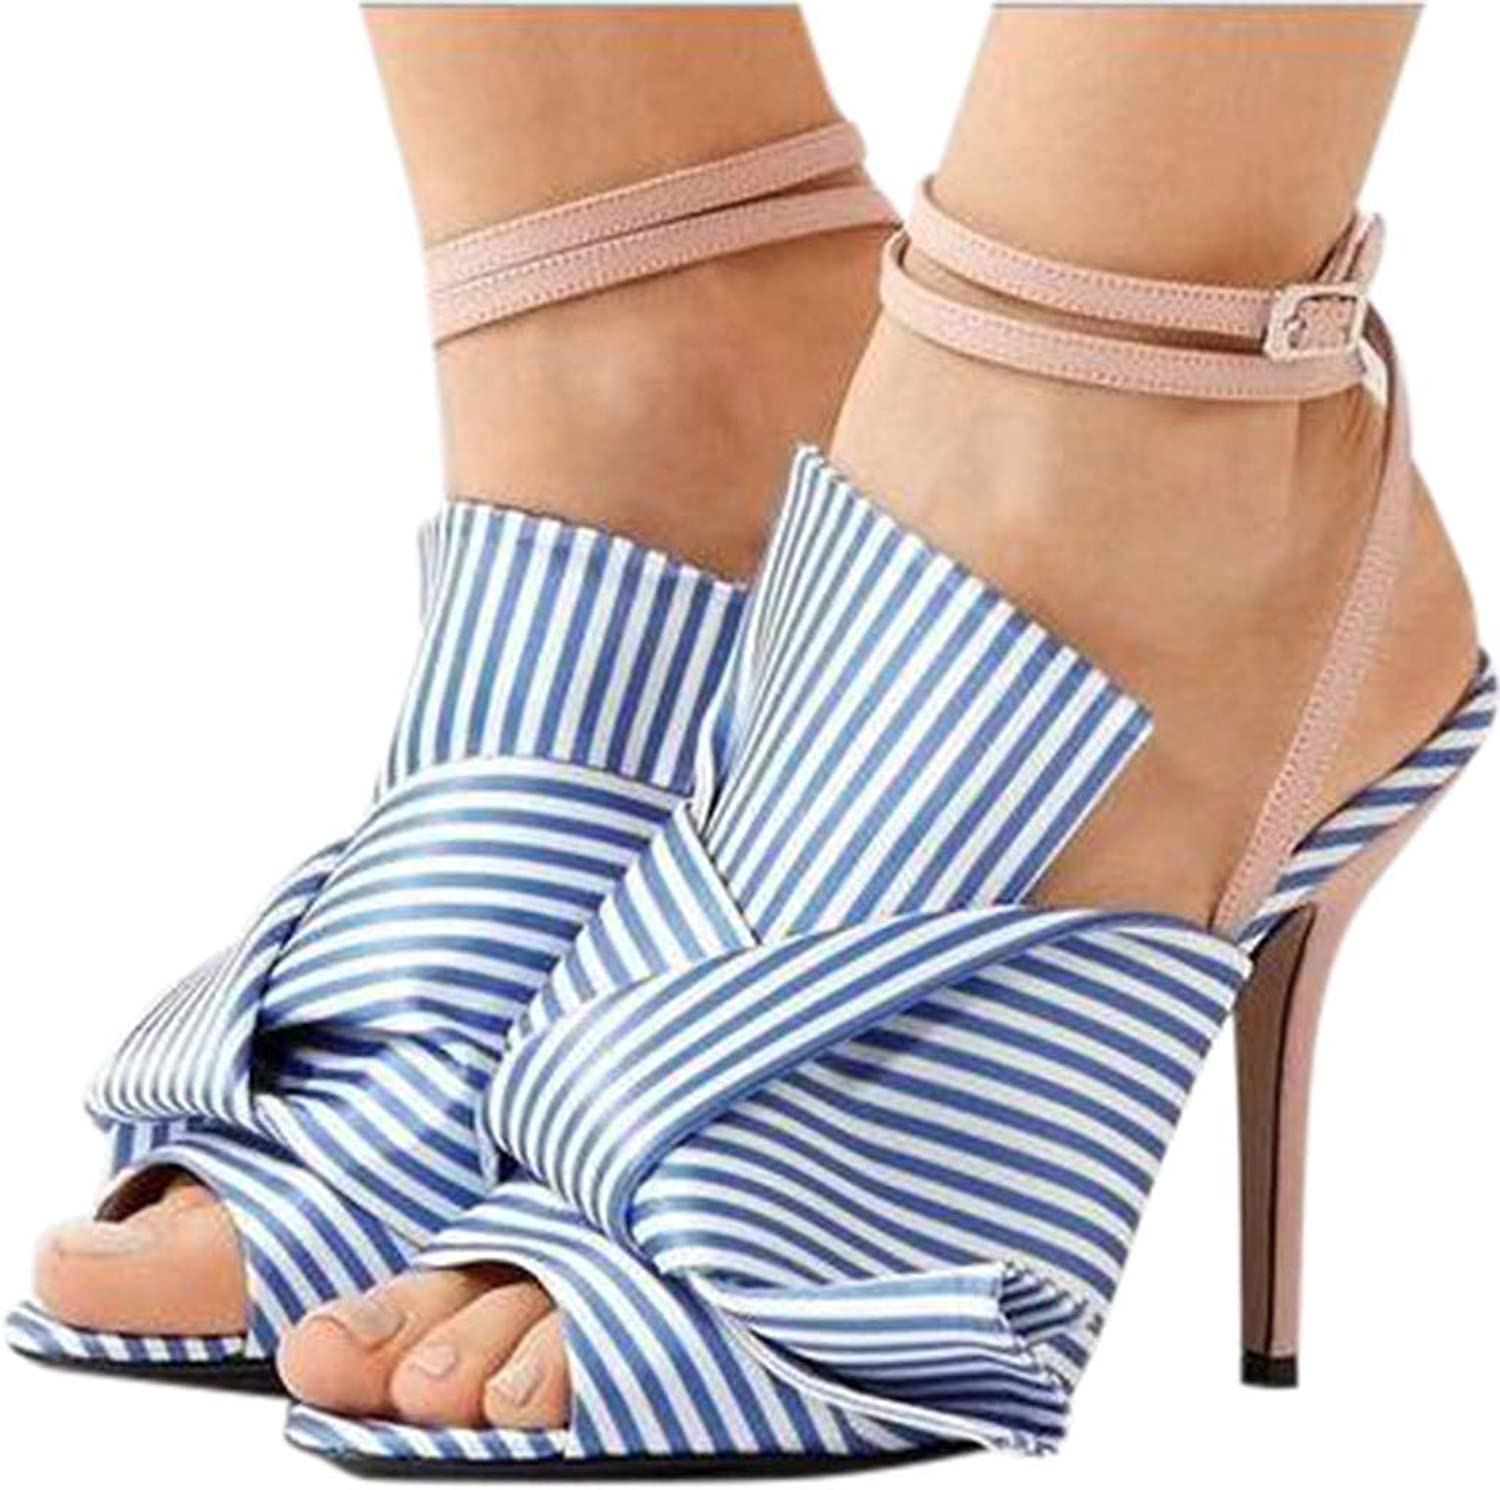 High Heeled Sandals for Women On Sale Clearance,melupa Bow One-Strap Buckle Striped shoes